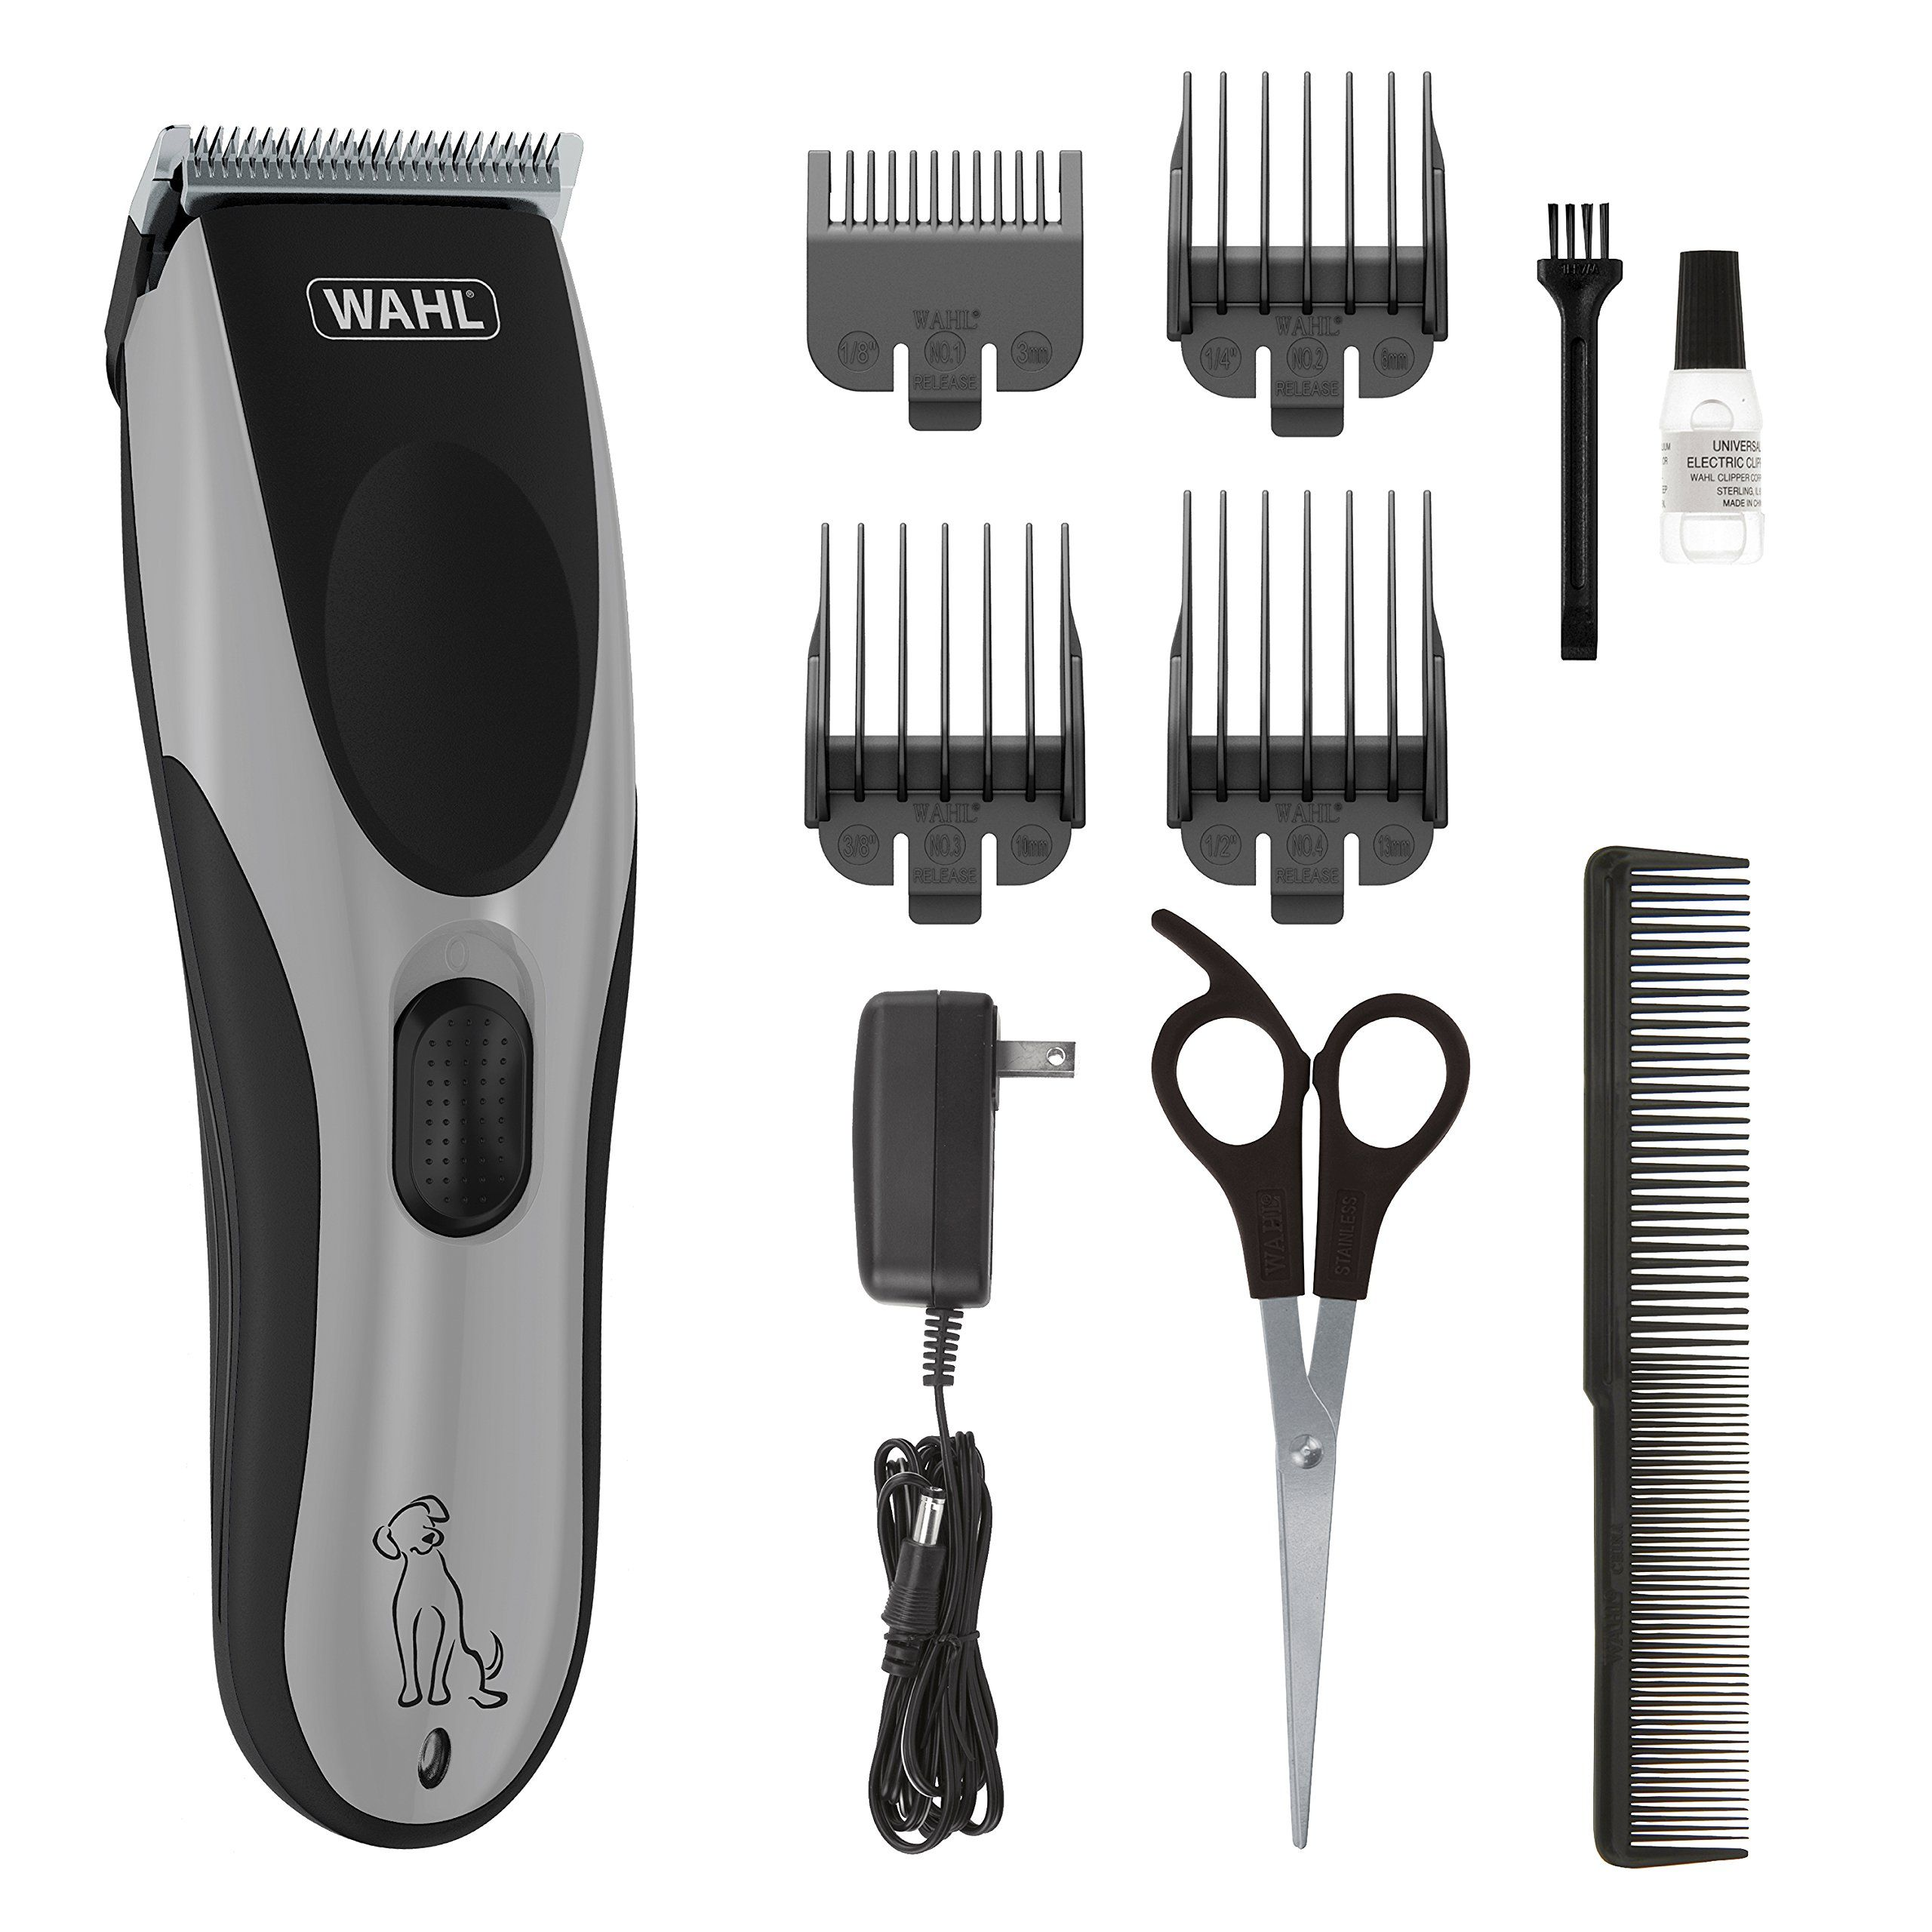 Wahl Easy Pro Pet Clippers Low Noise Heavy Duty 09549 Cord Cordless Rechargeable Dog Grooming Clippers Find O In 2020 Dog Grooming Clippers Dog Grooming Dog Clippers